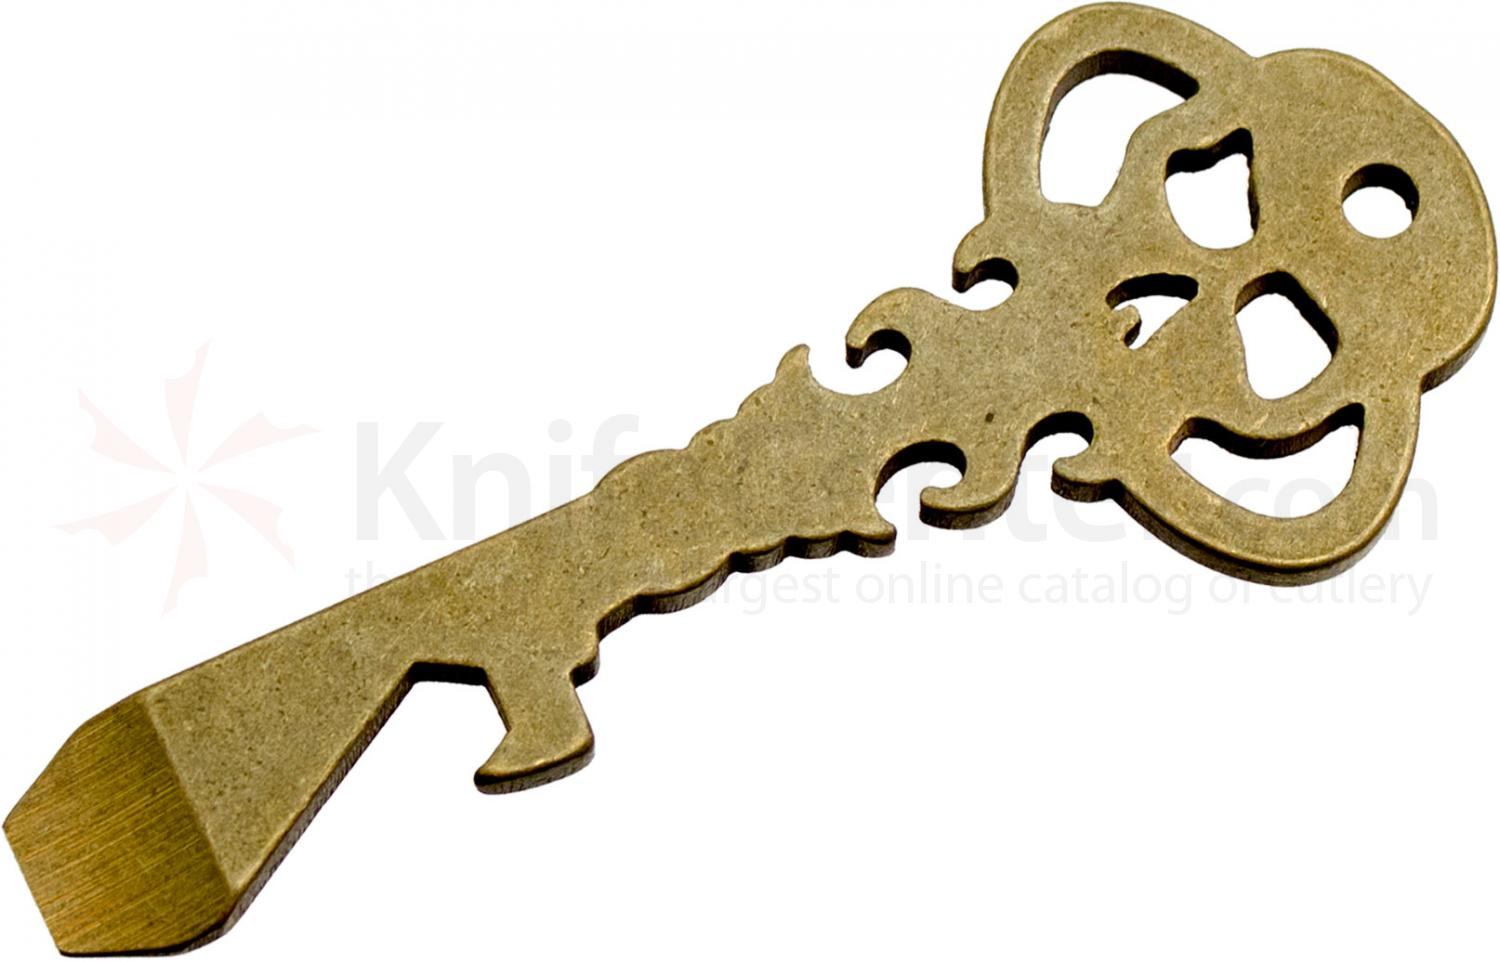 Chaves American Made Key Tool, Tumbled Brass, 3.5 inch Overall